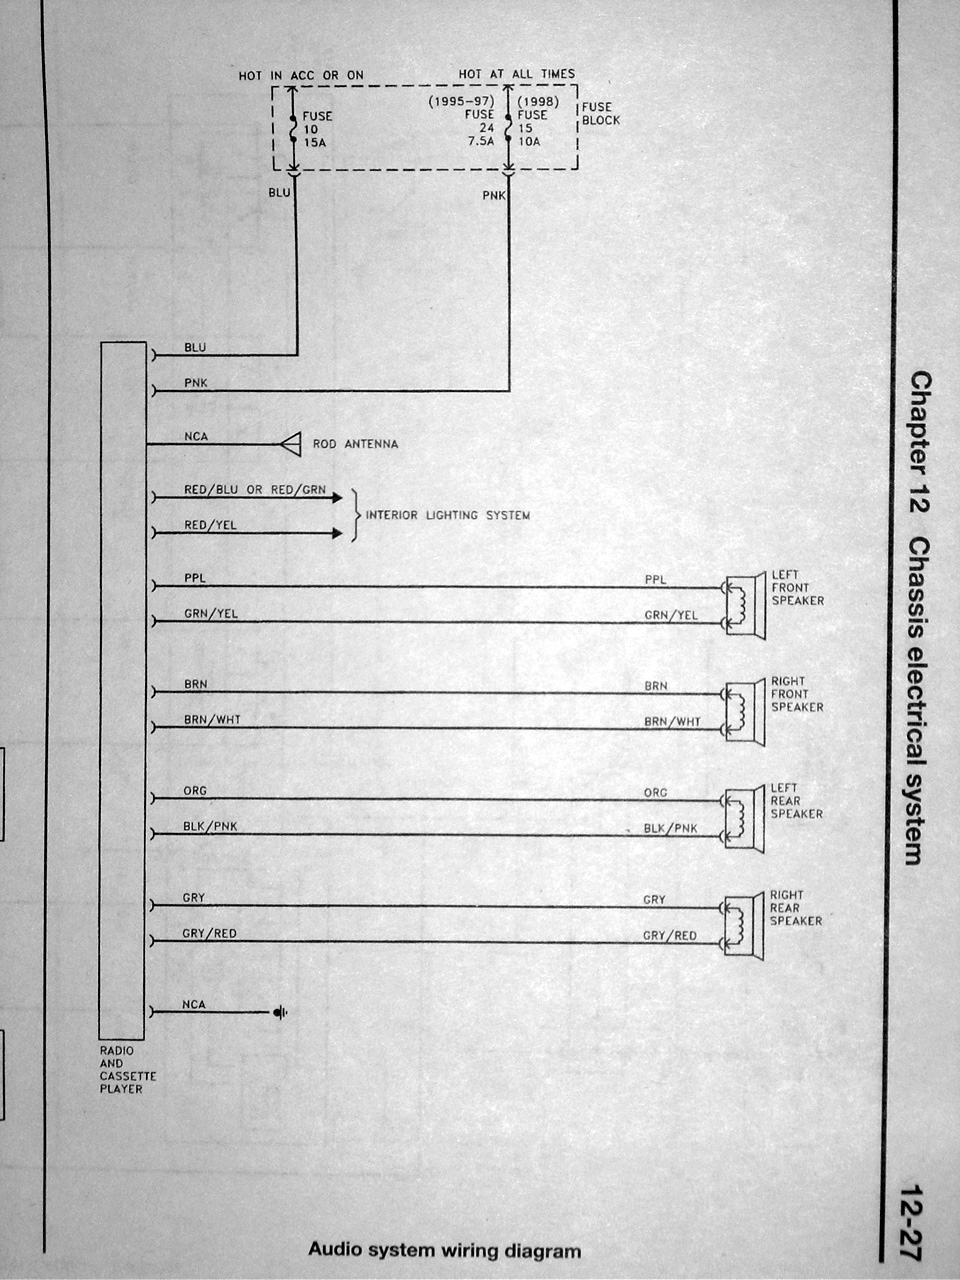 DSC01849 wiring diagram thread *useful info* nissan forum 2006 Chevy Cobalt Stereo Wiring Diagram at mifinder.co